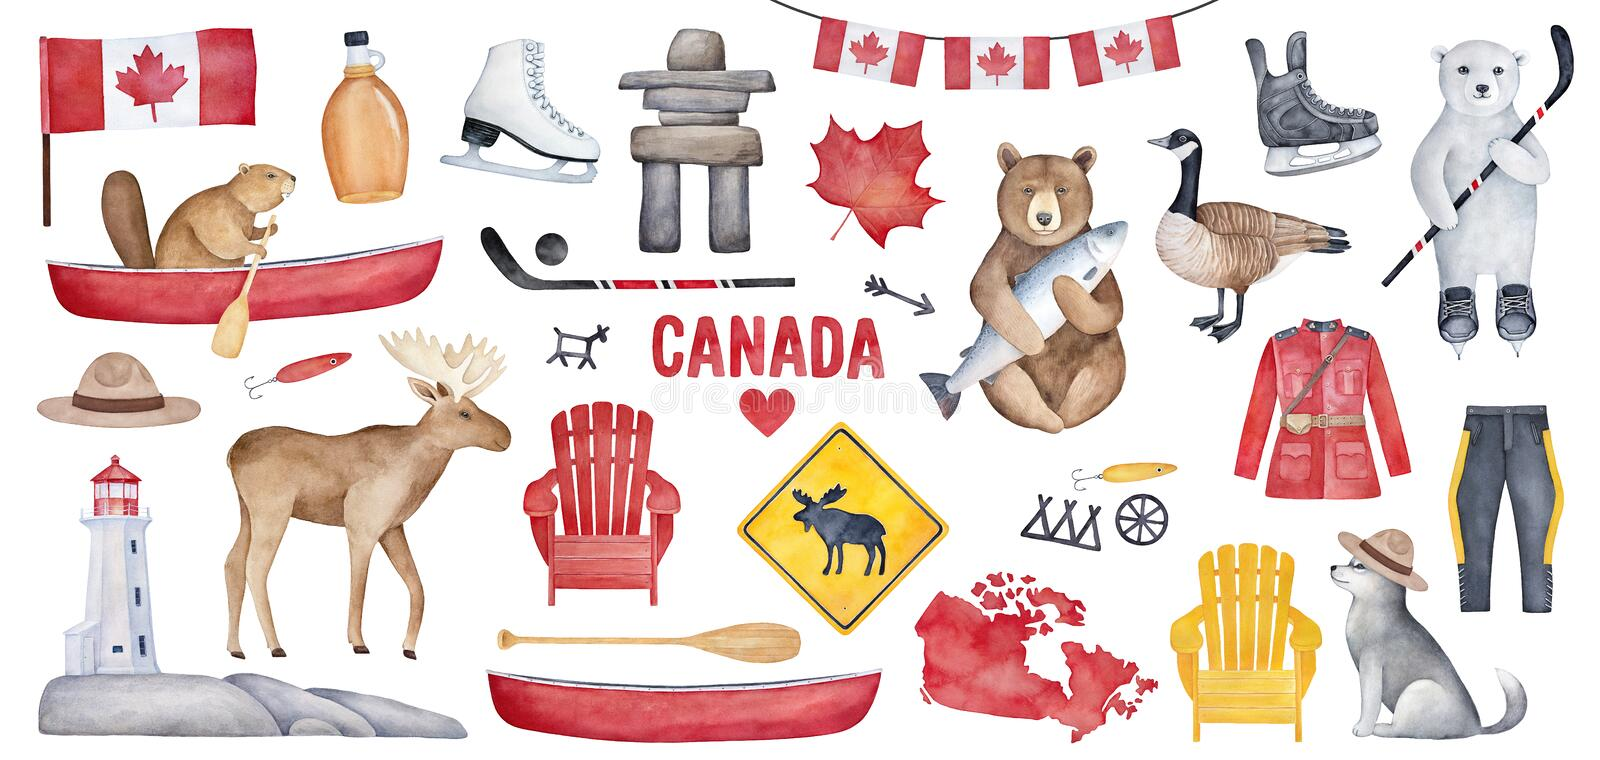 Big Canada Set with various symbols like national flag, maple syrup bottle, lighthouse, hockey skates. Handdrawn watercolour paint on white background, cutout royalty free illustration